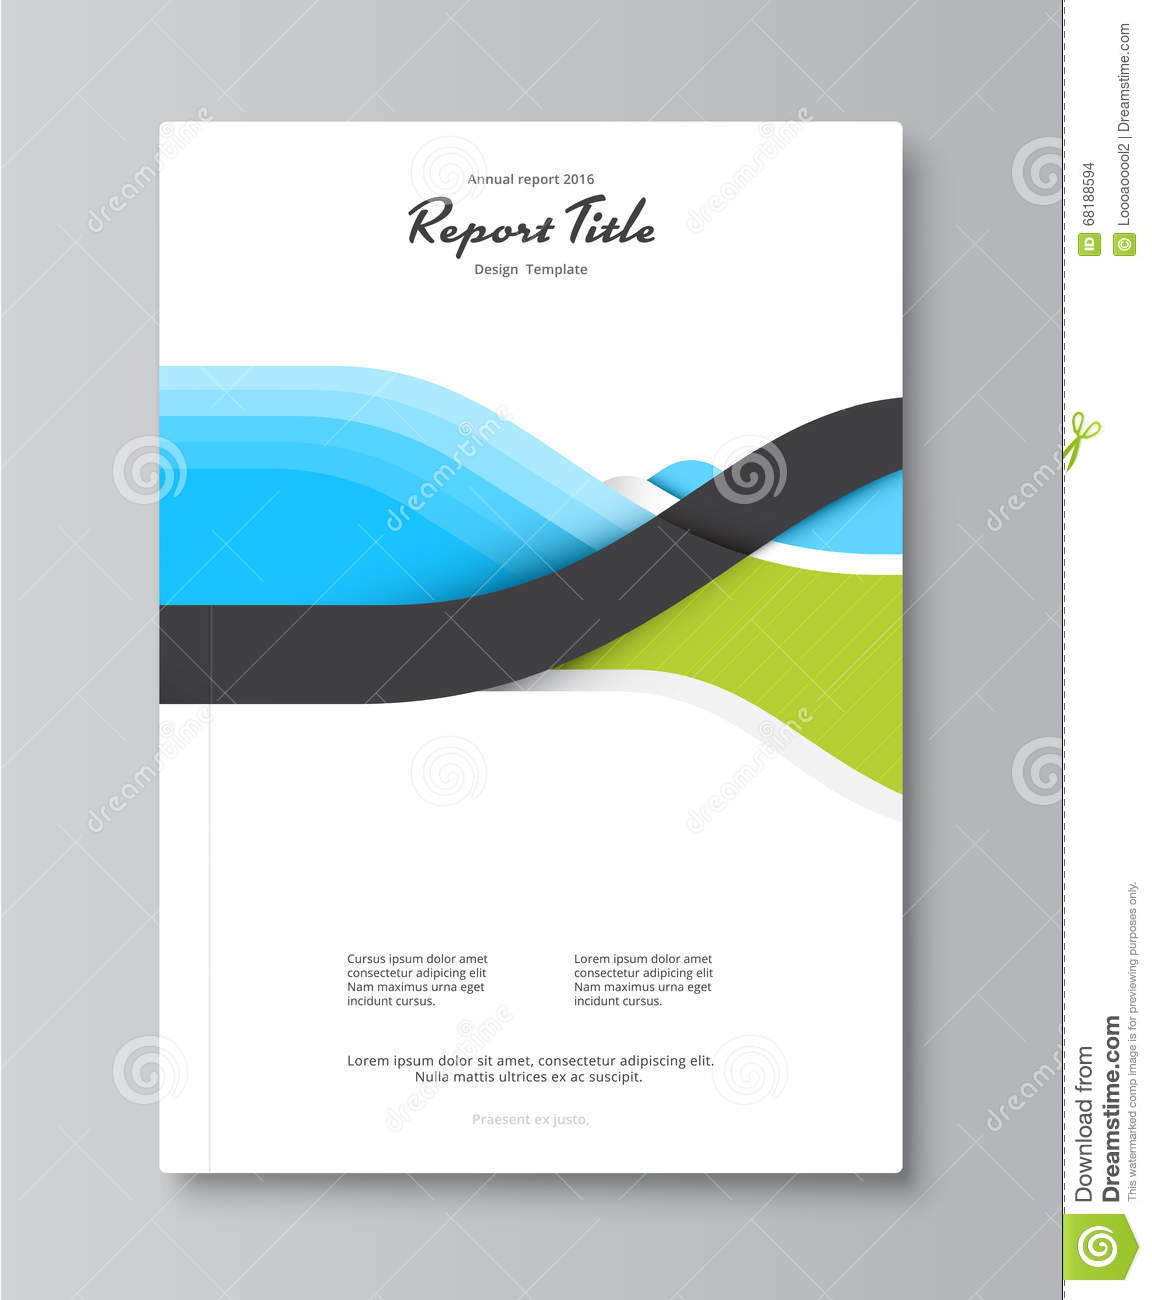 annual report cover design book brochure template sample annual report cover design book brochure template sample